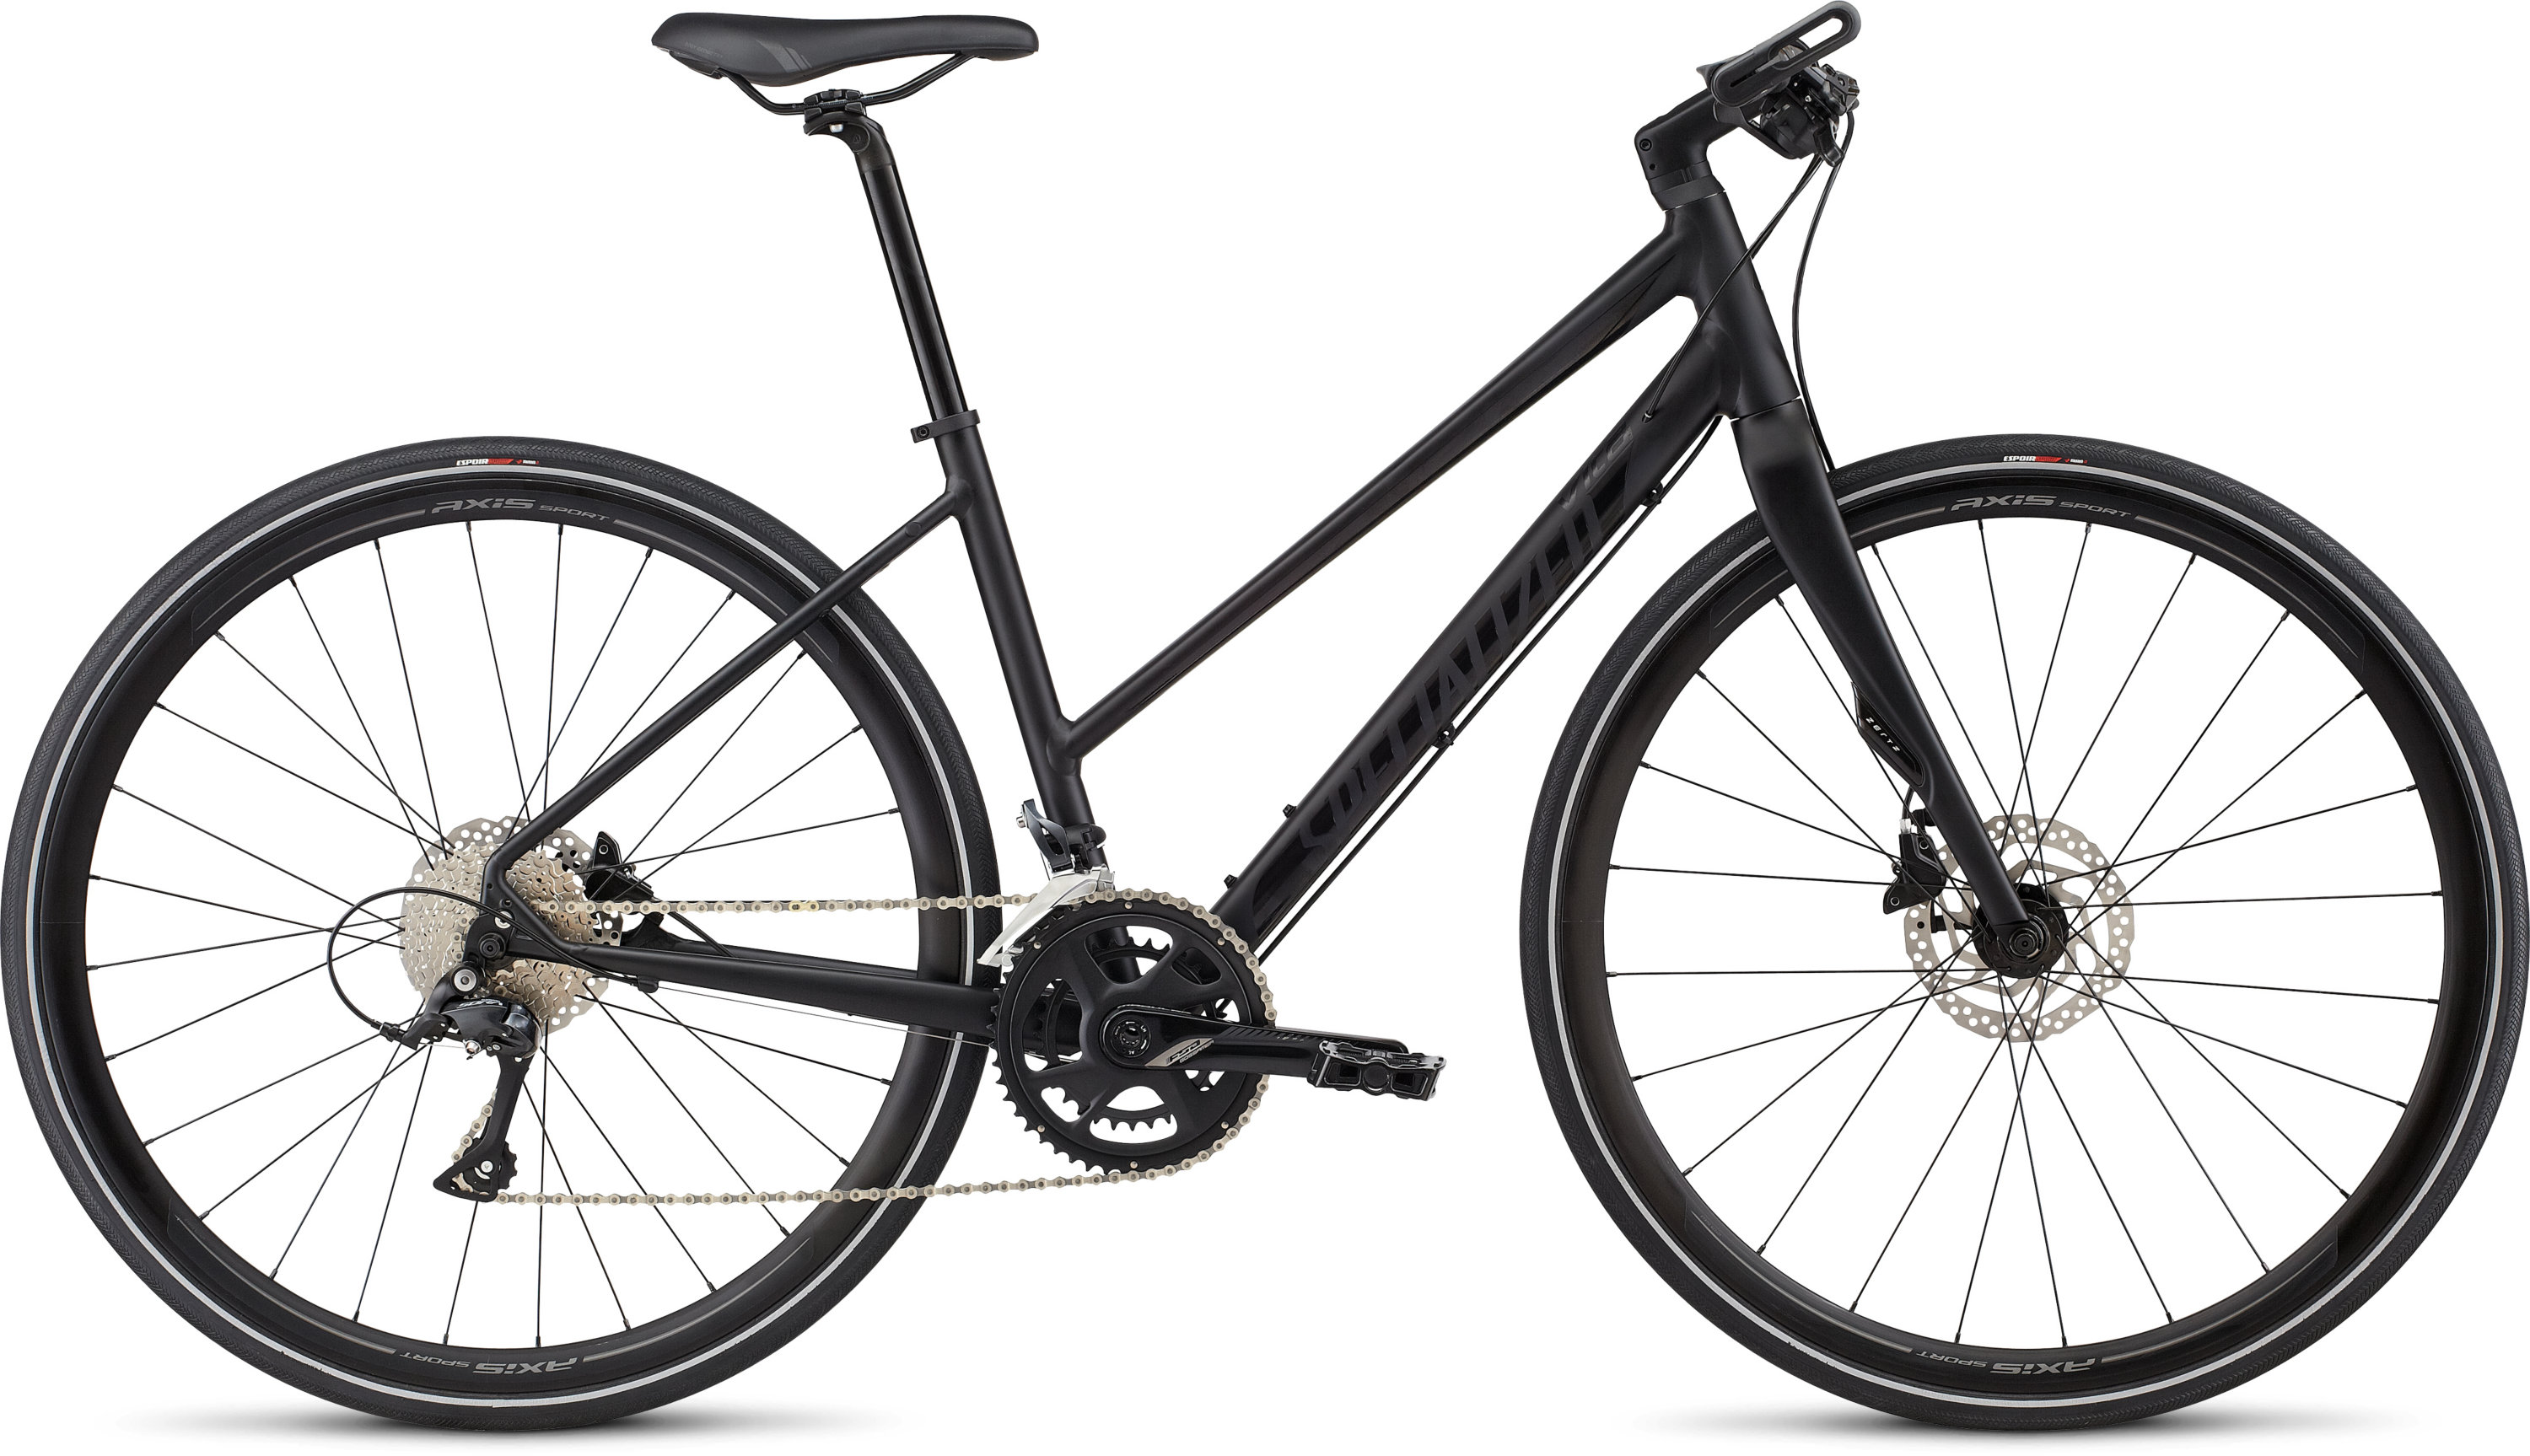 SPECIALIZED VITA ELITE ST TARBLK/TARBLK S - Bike Maniac